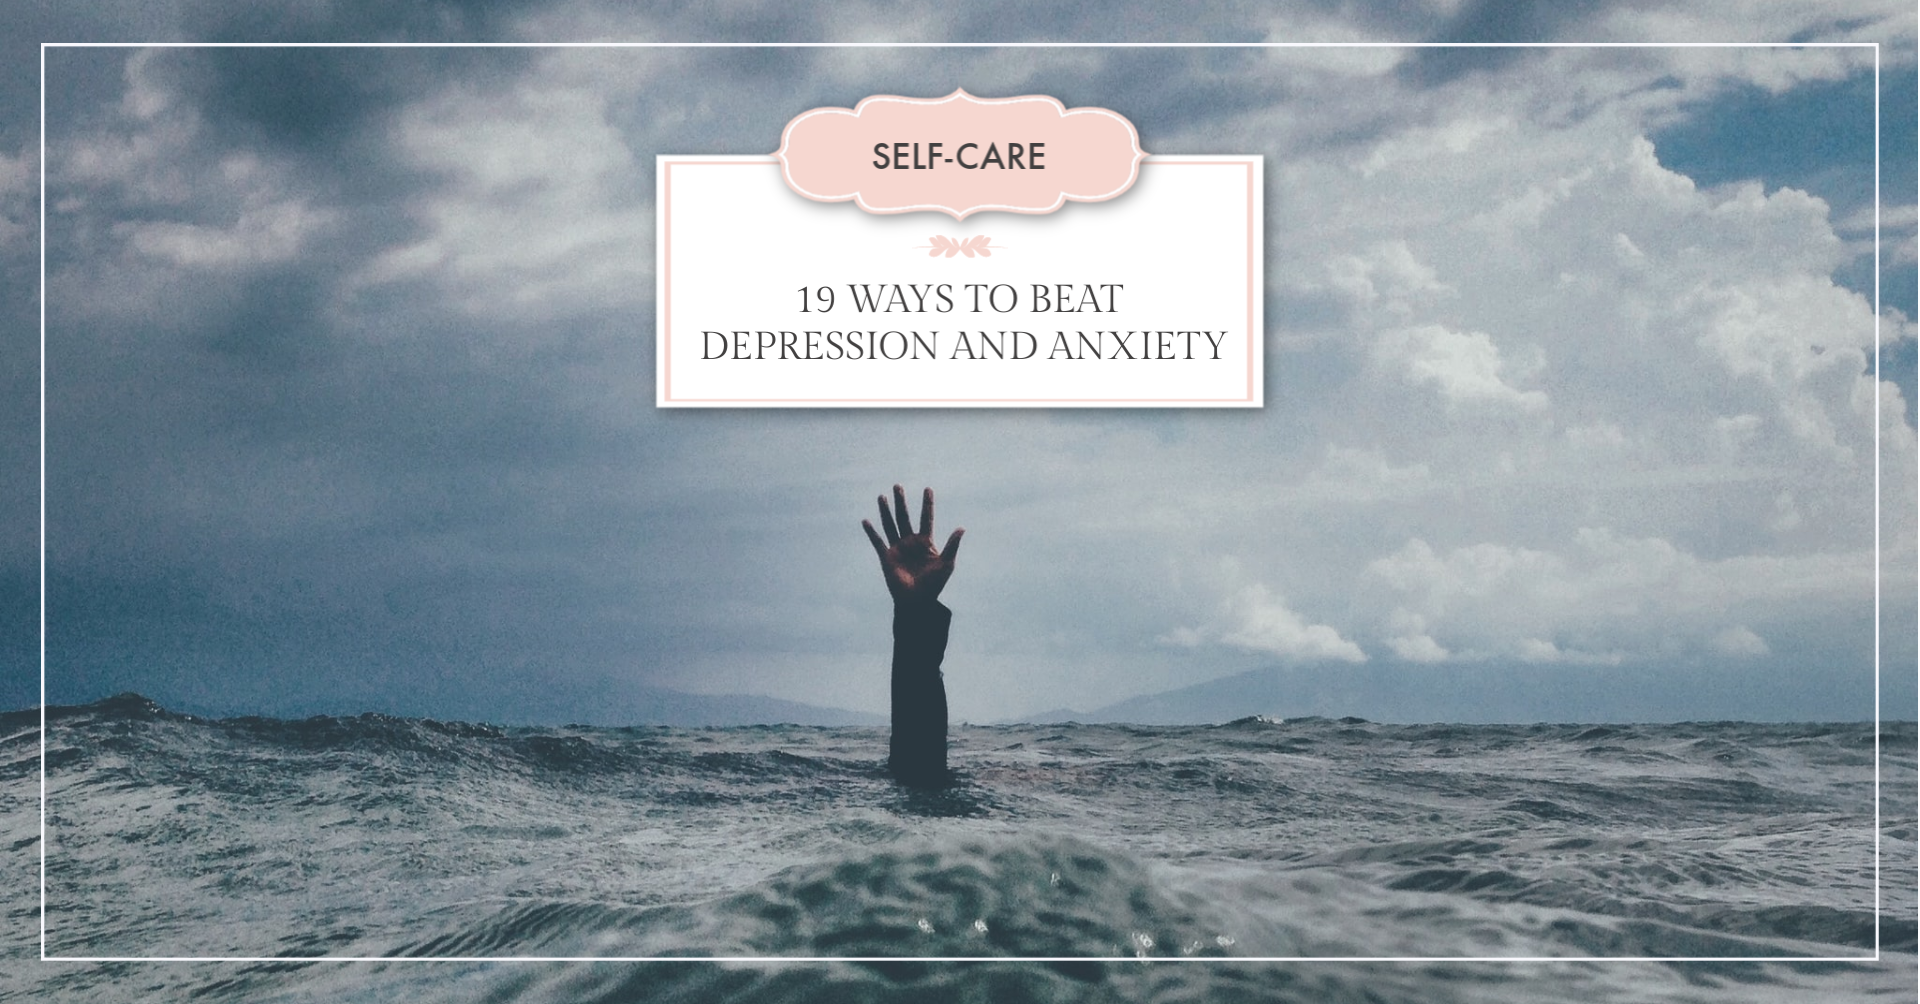 19 Ways to Beat Depression and Anxiety